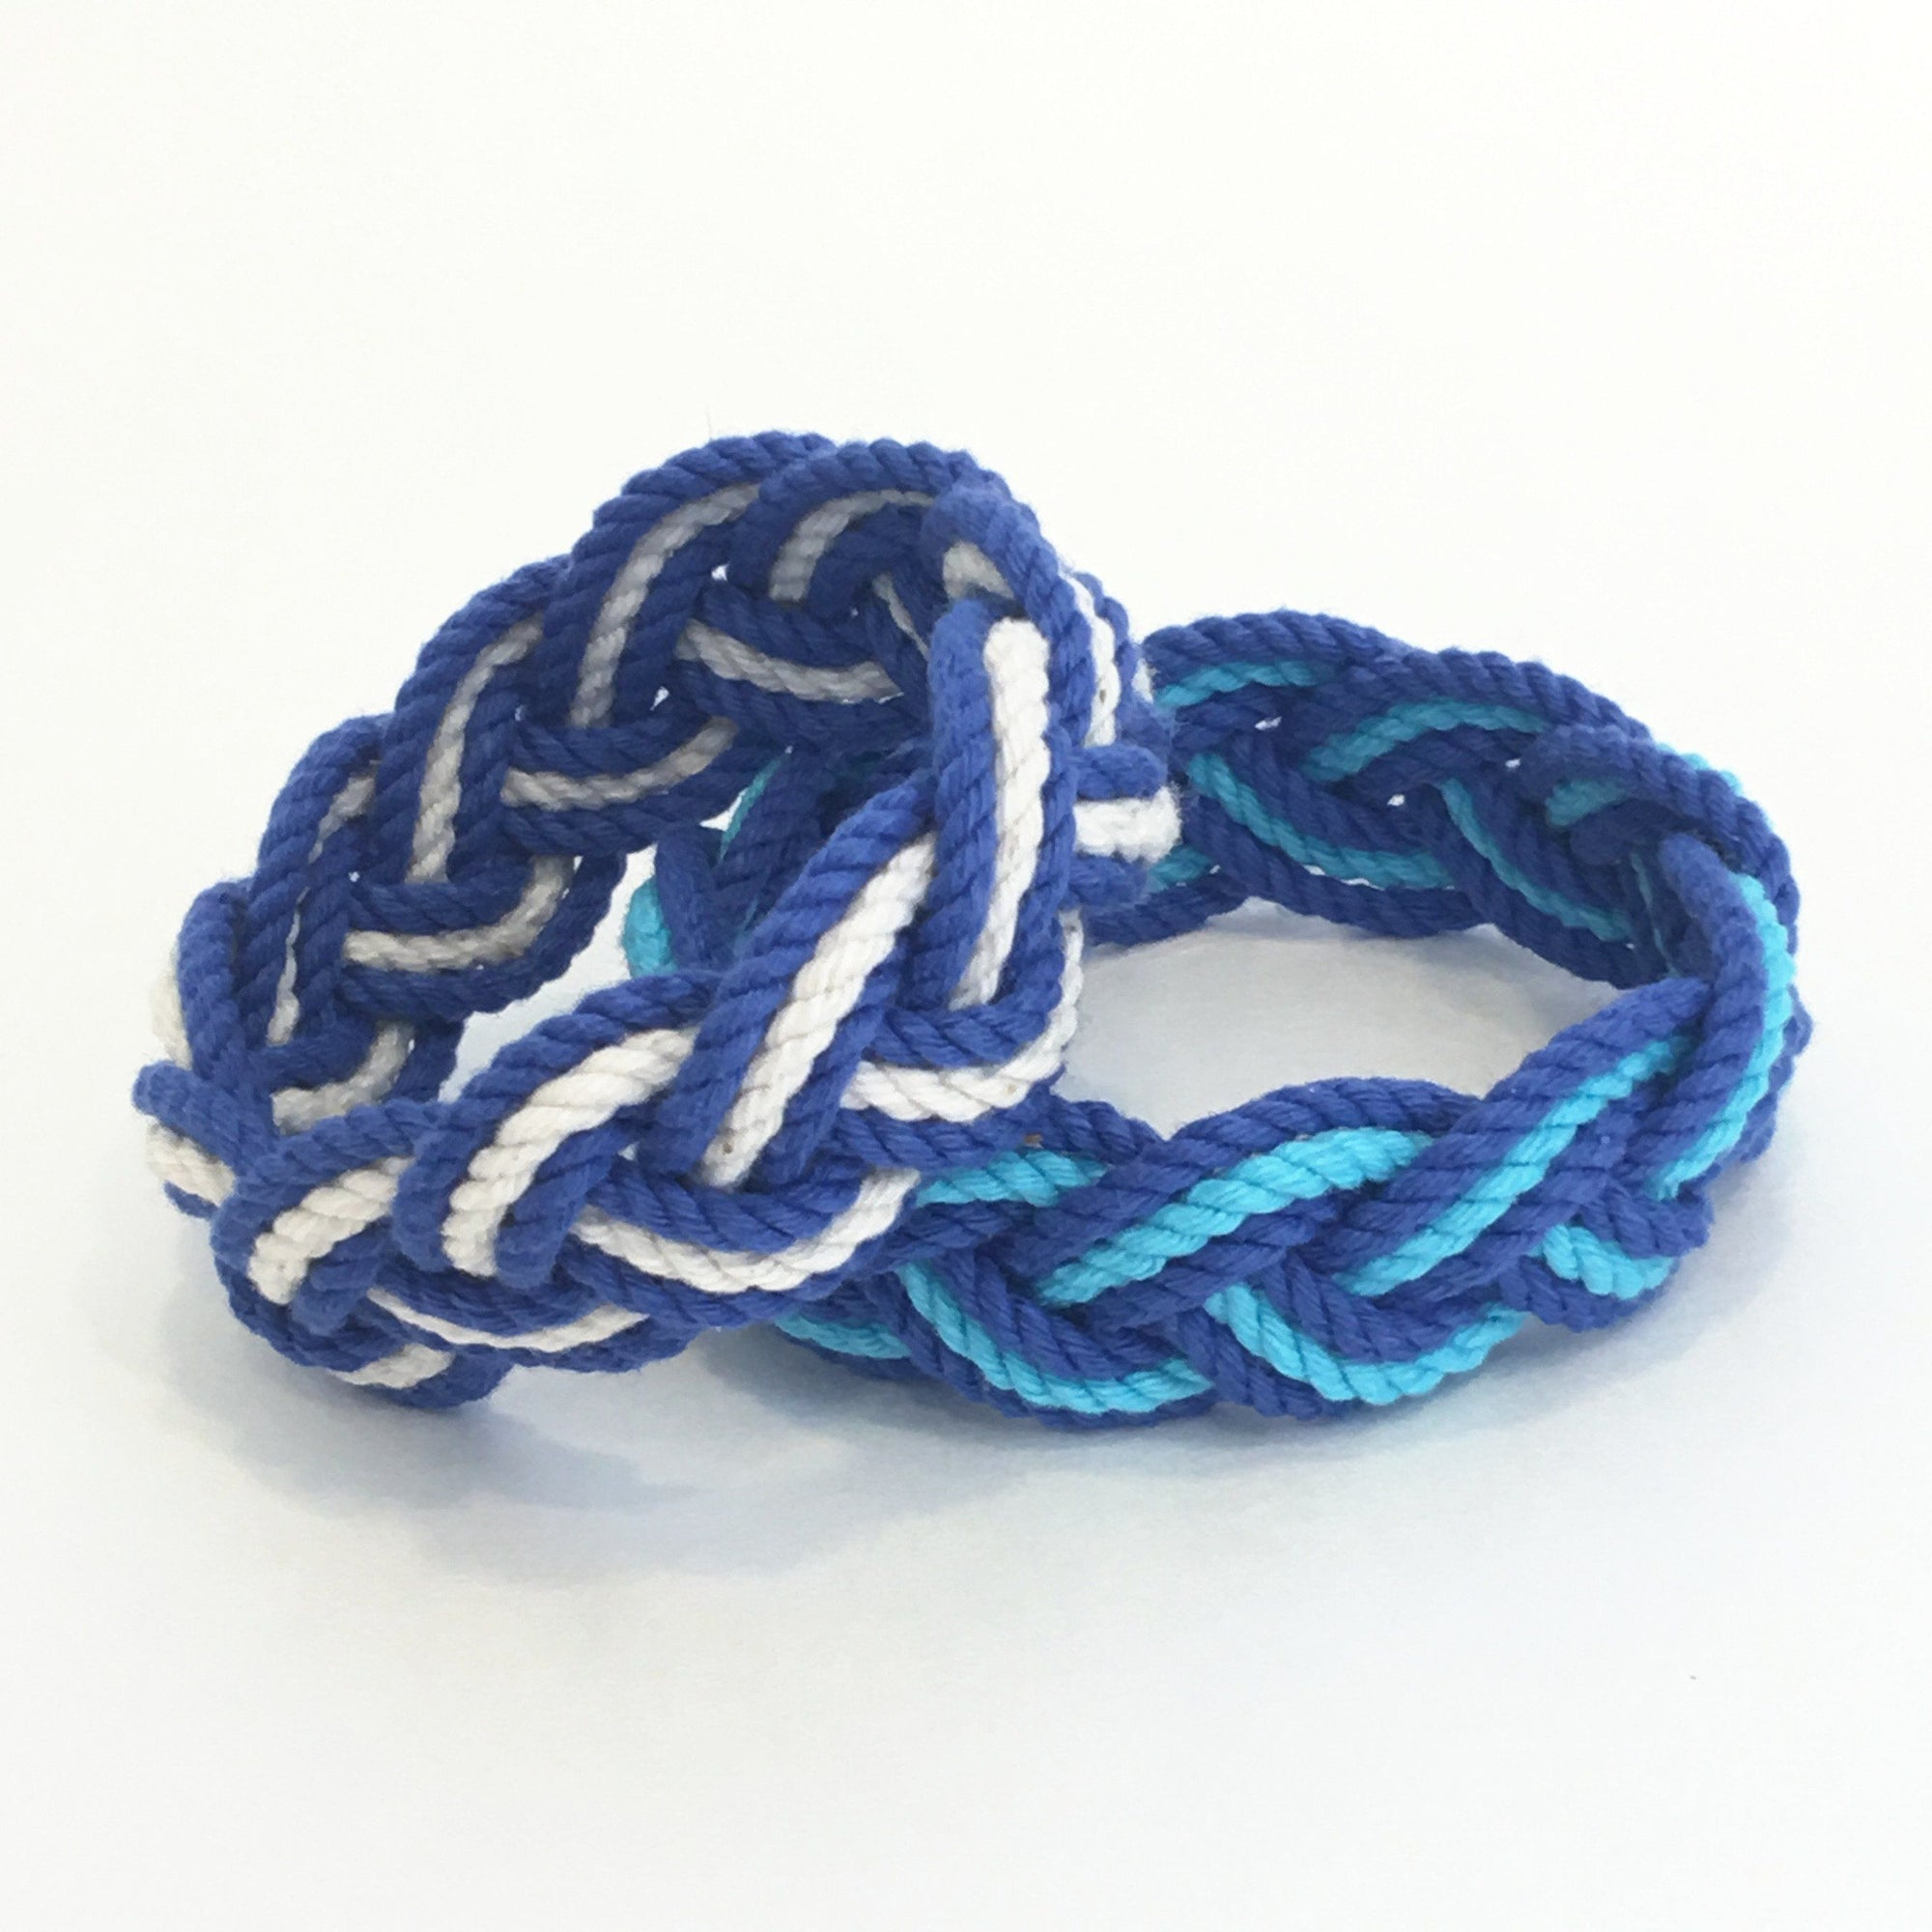 Nautical Striped Sailor Knot Bracelets Summer Blues Handmade sailor knot American Made in Mystic, CT $ 6.00